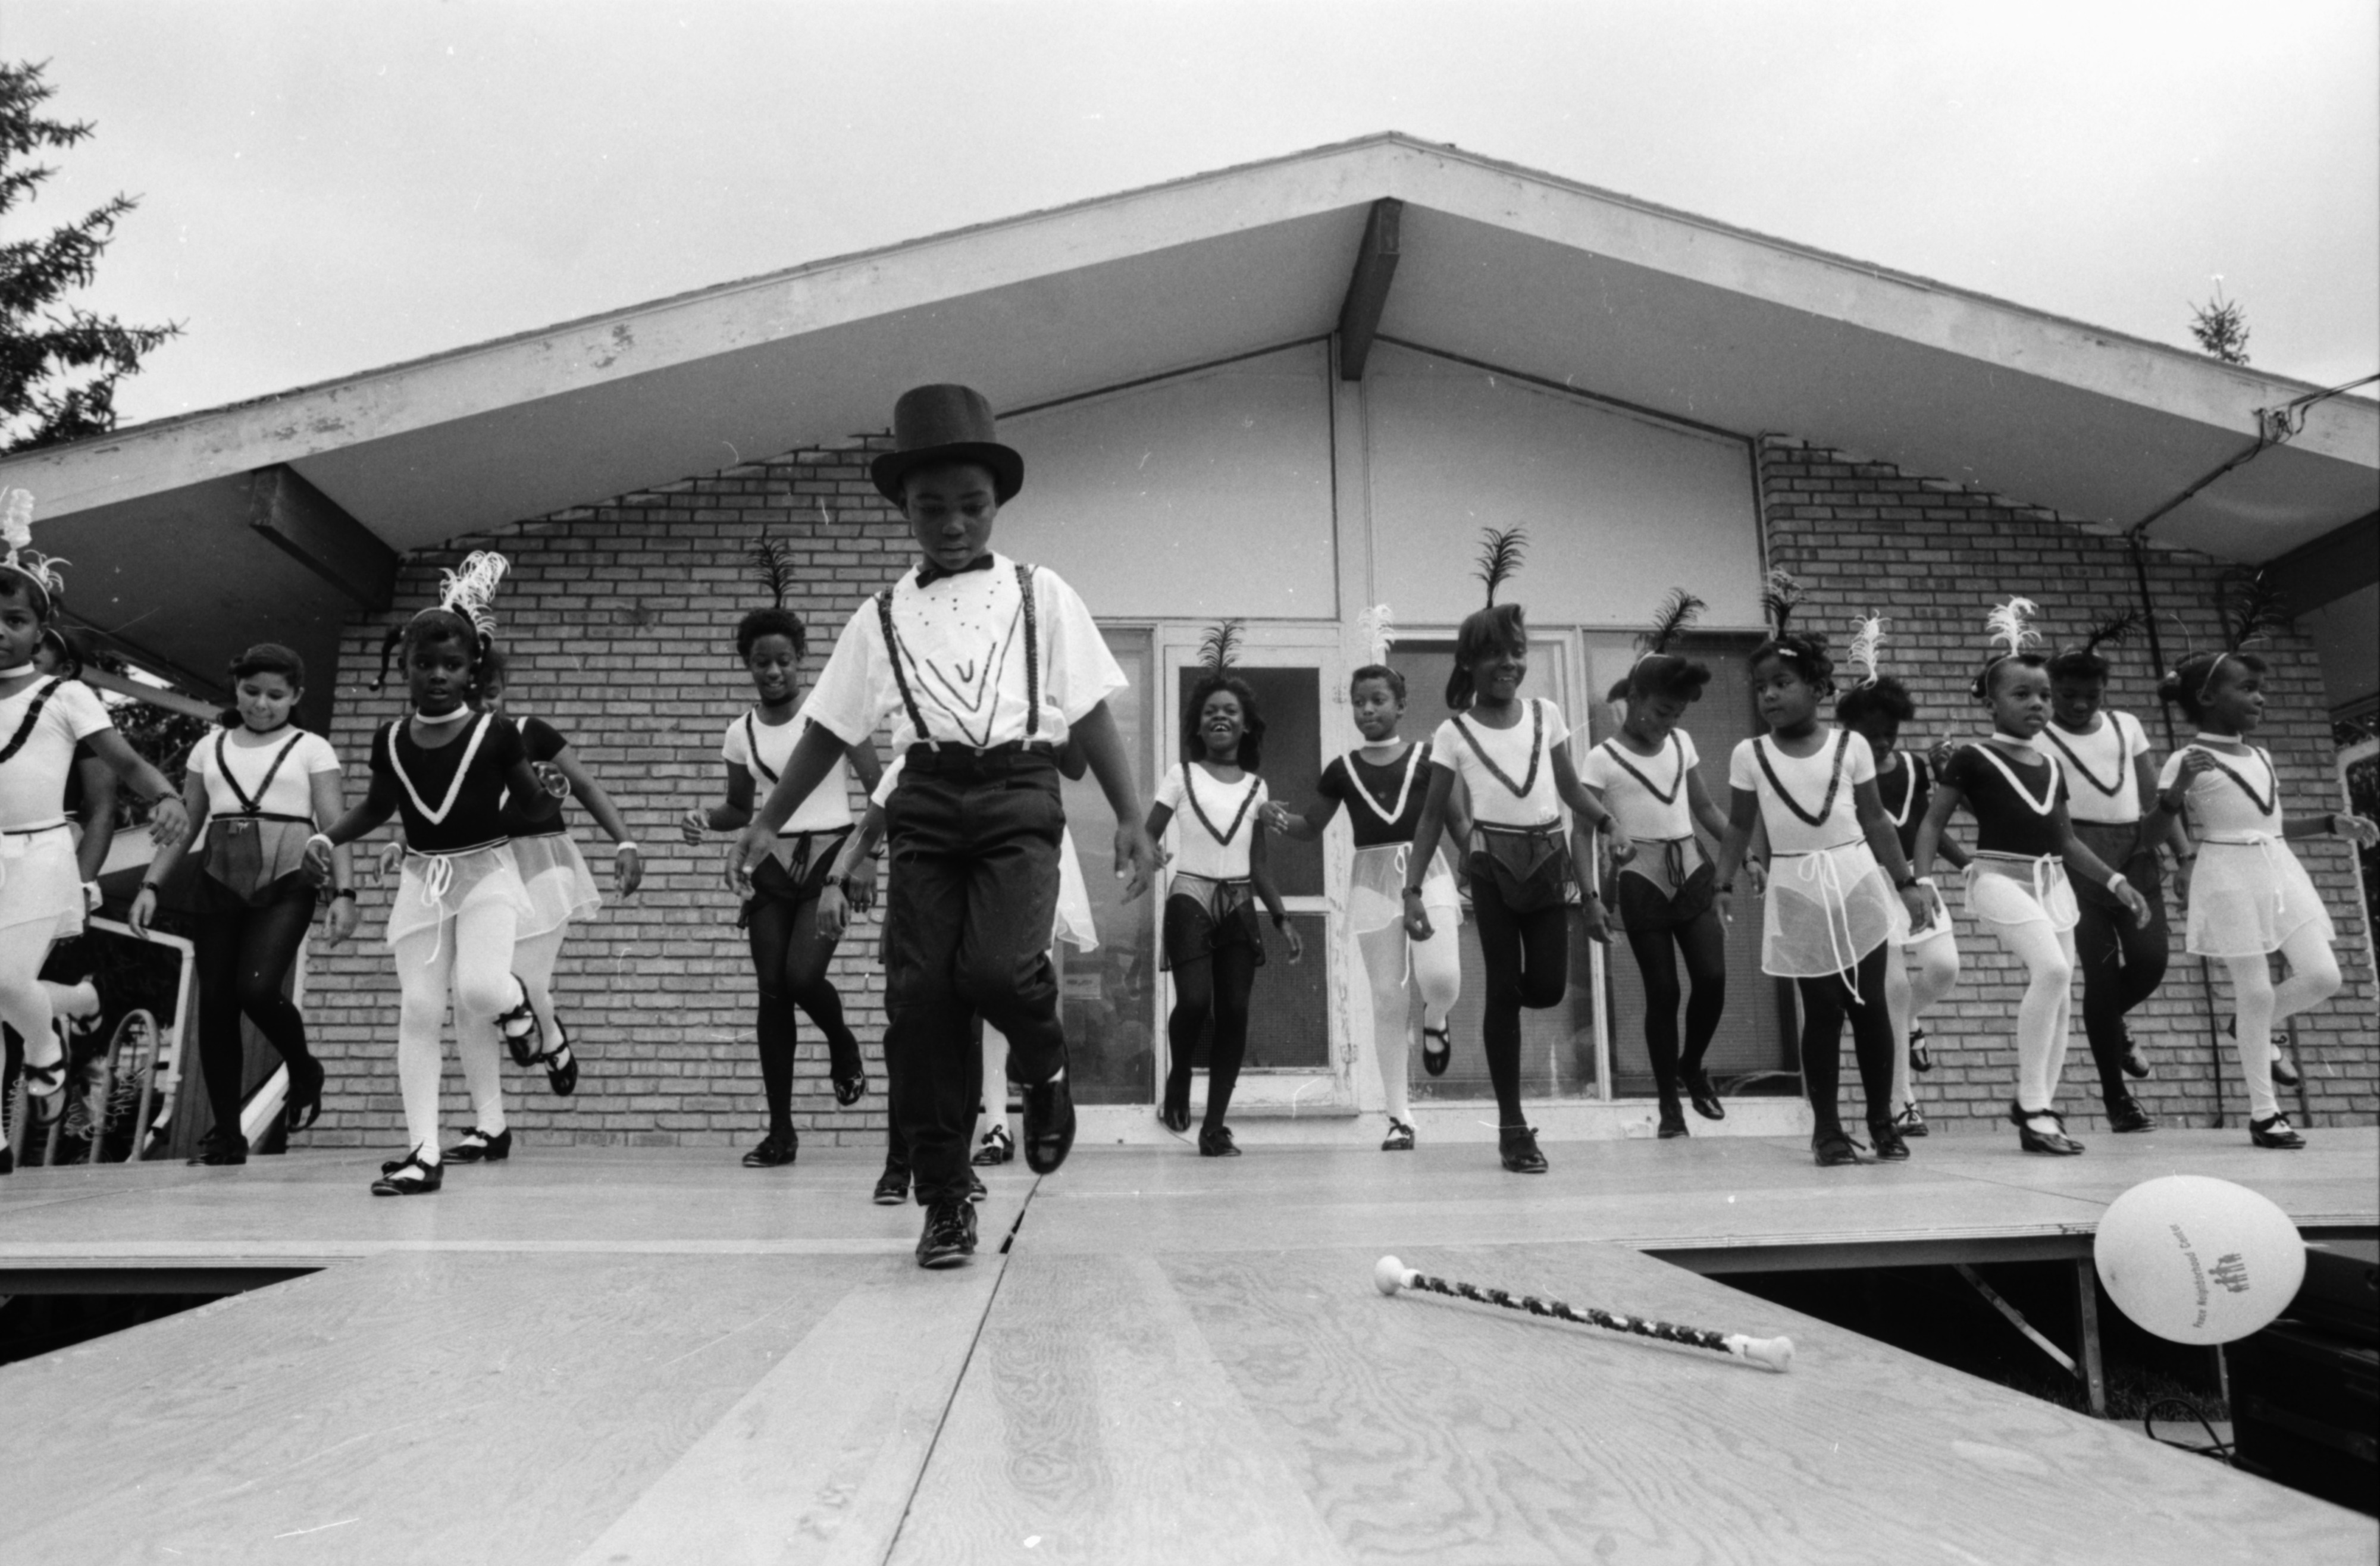 Tap Dancing at Peace Neighborhood Center Summer Camp Party, August 1989 image